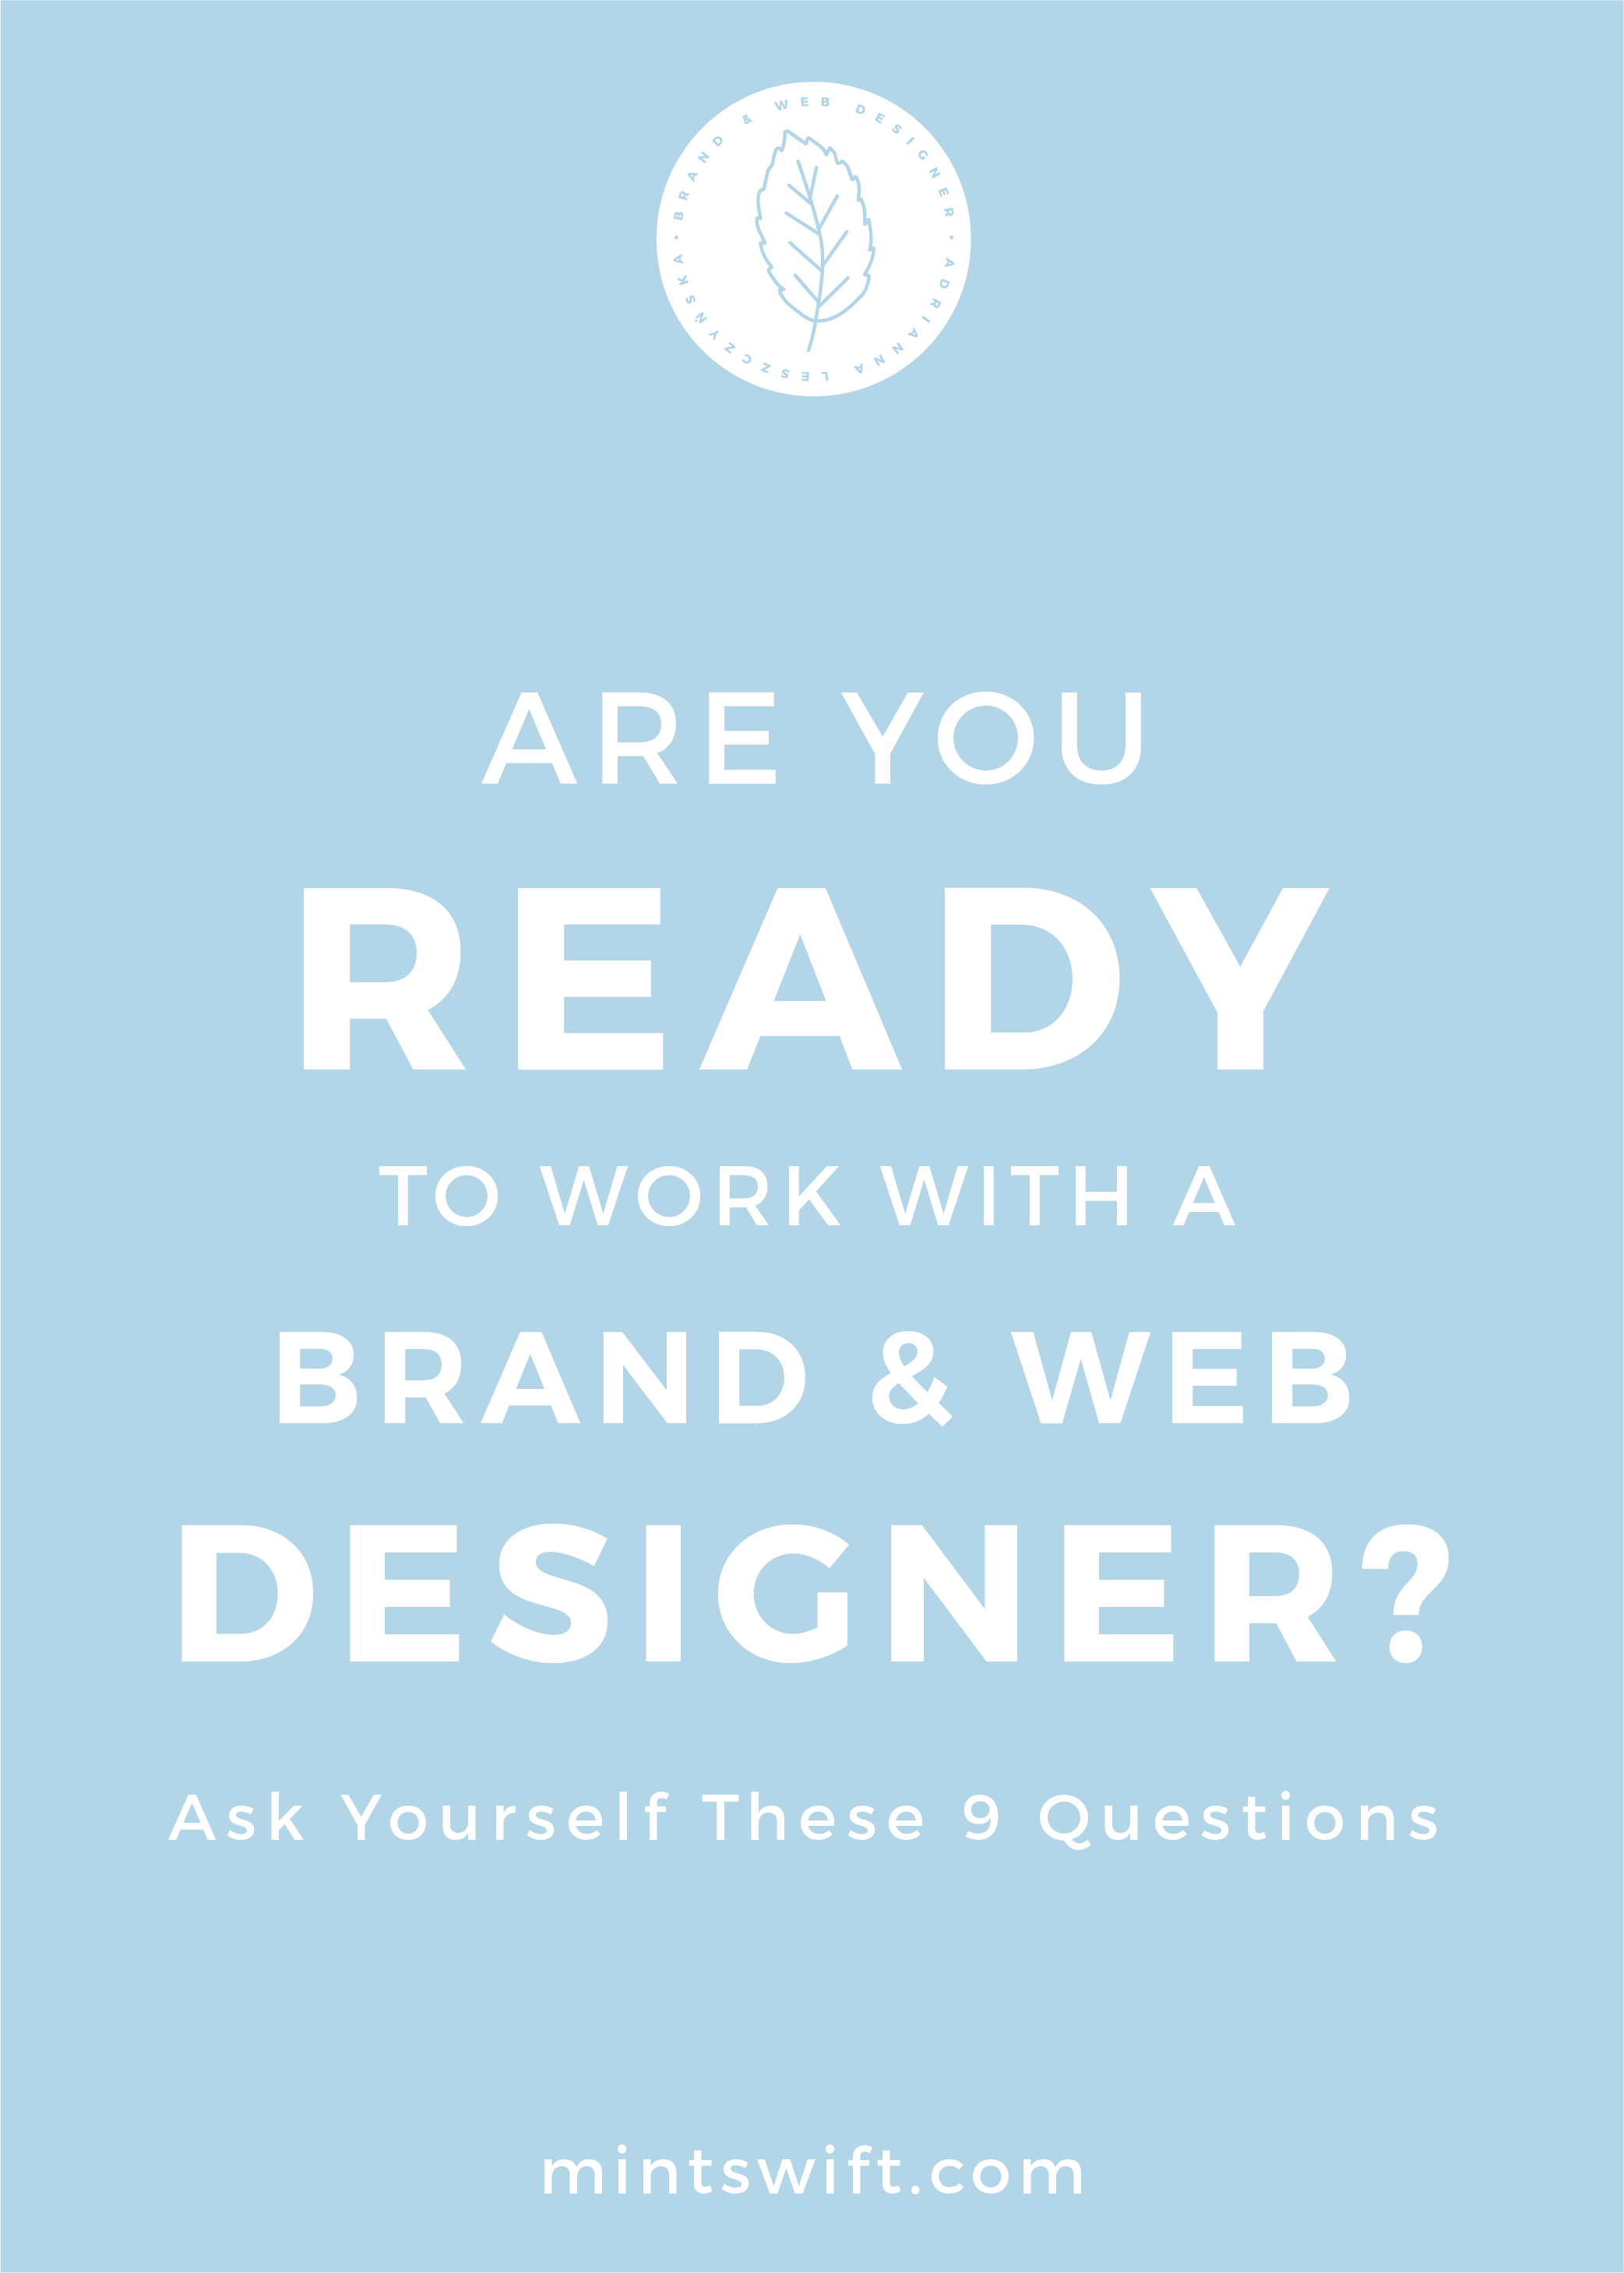 Are You Ready to Work With a Brand & Web Designer Ask Yourself These 9 Questions - MintSwift